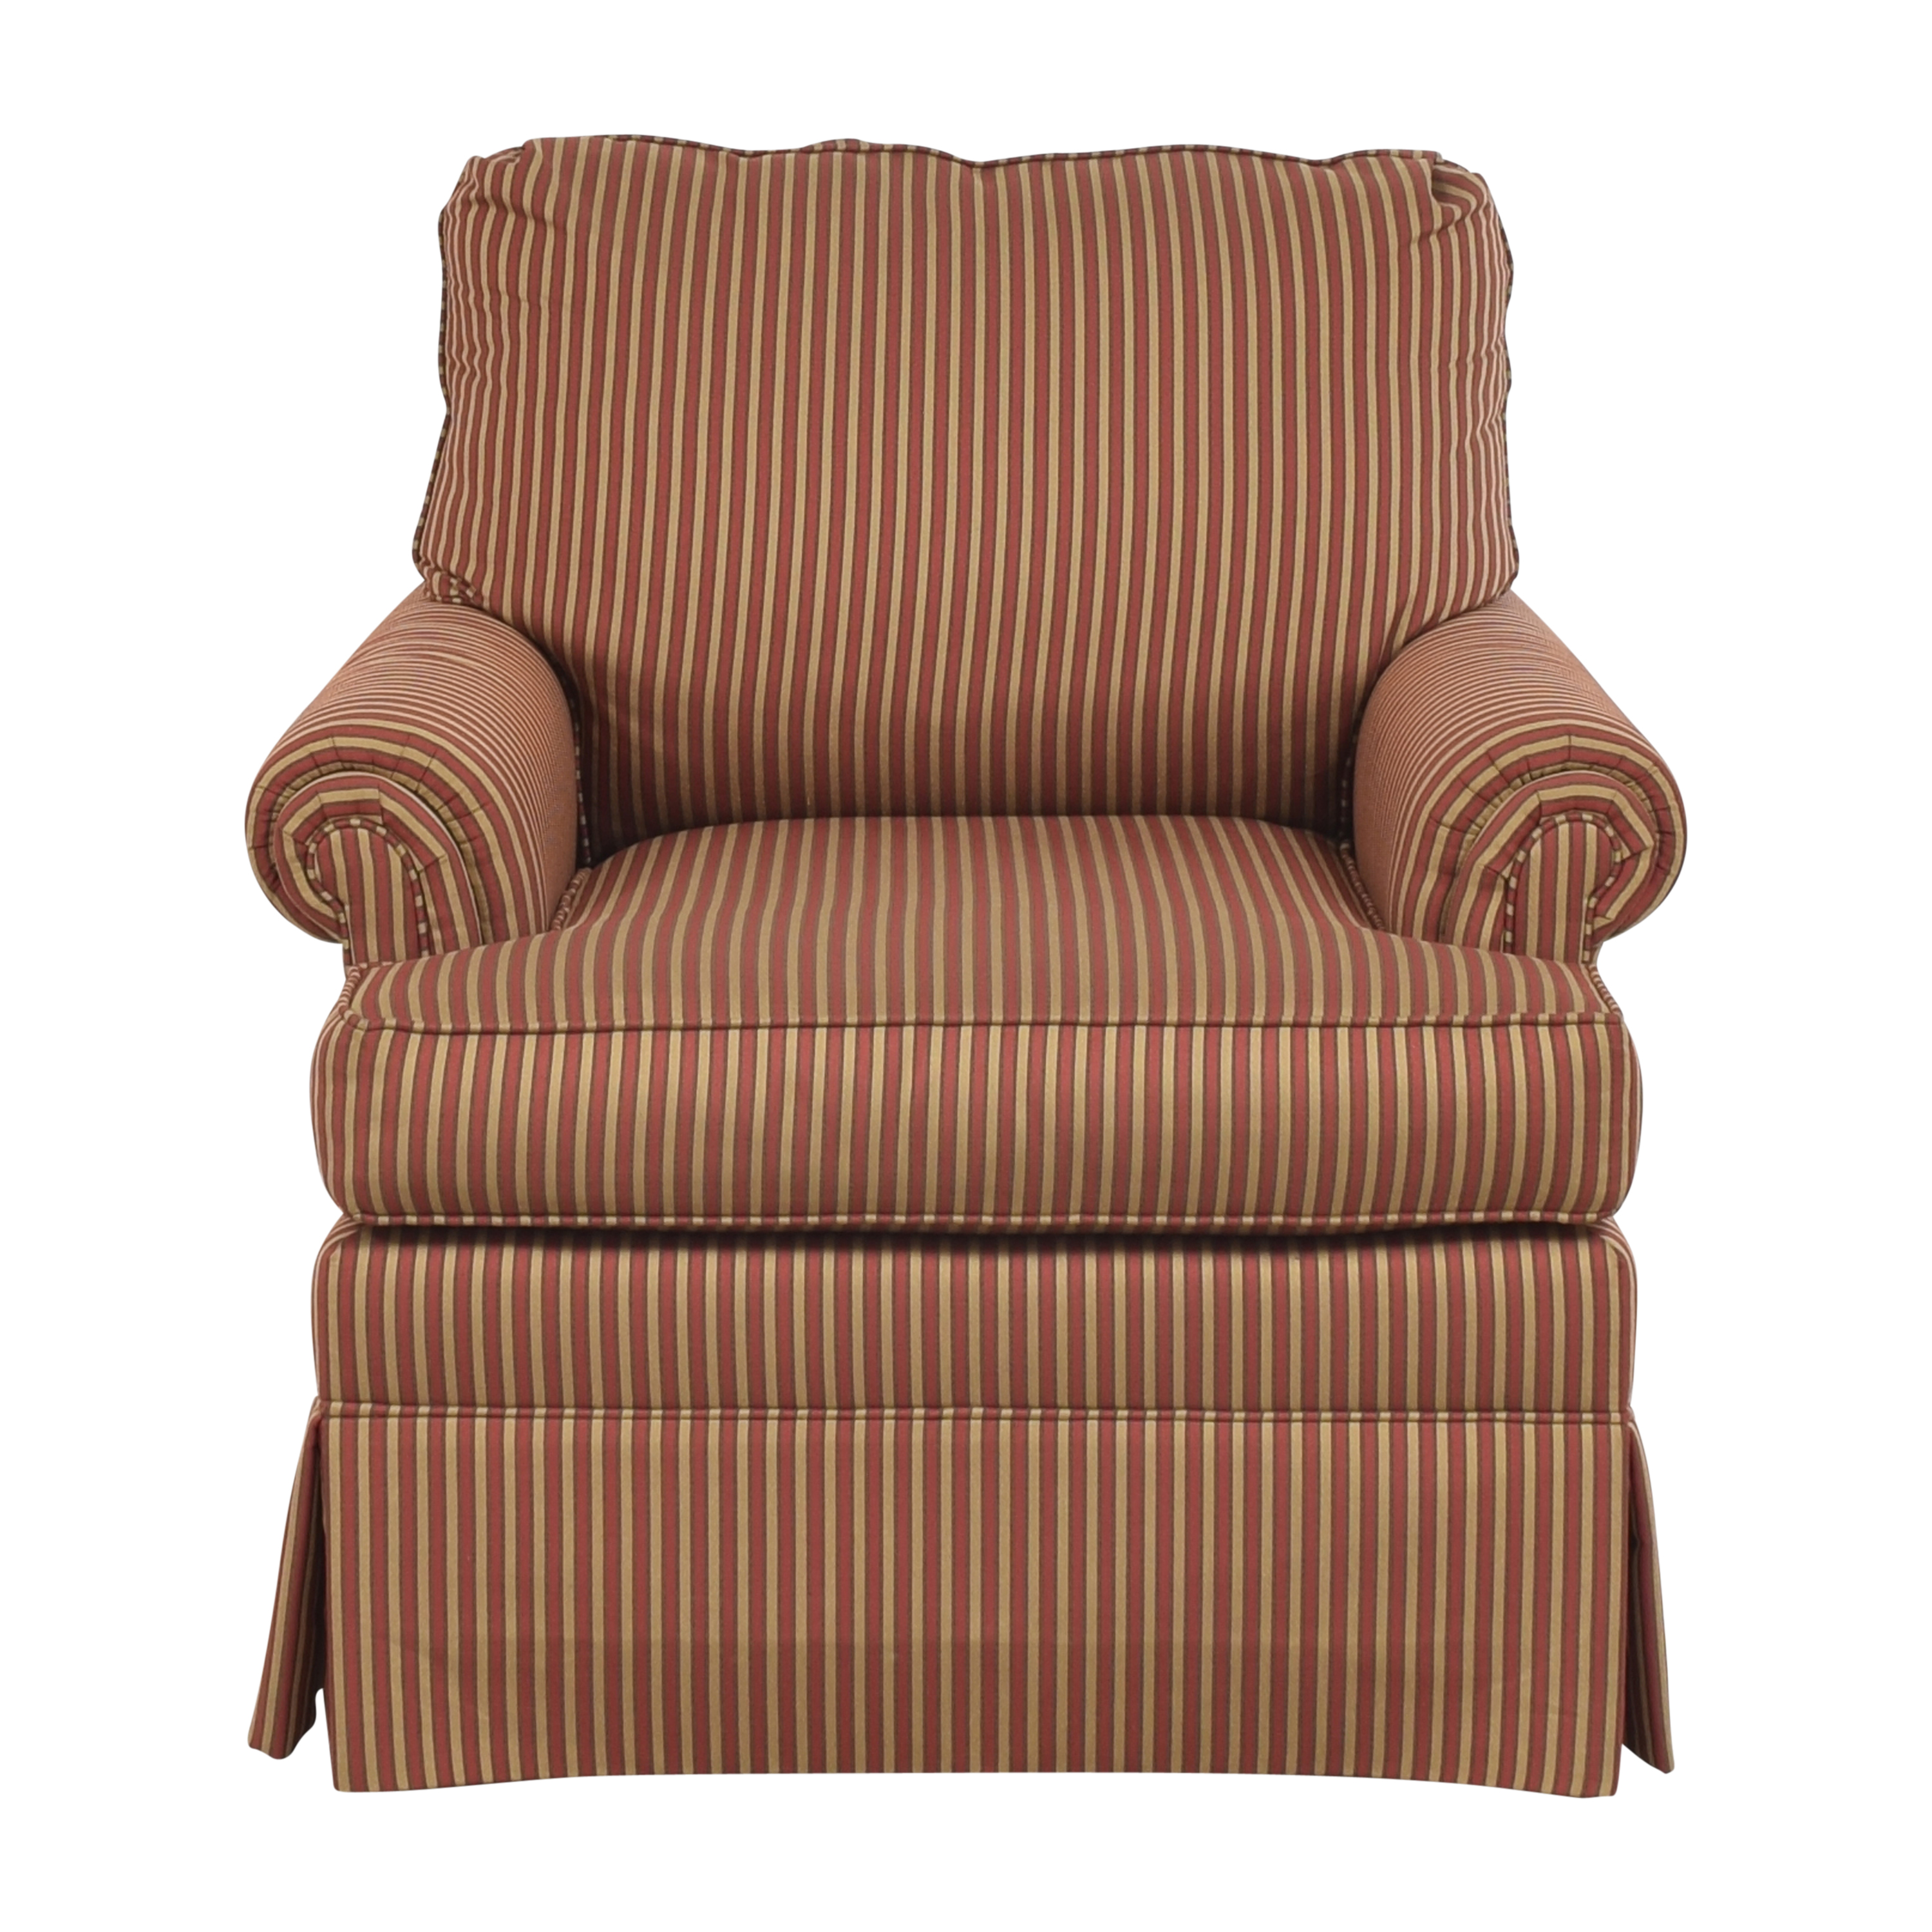 buy Ethan Allen Mr. Chair Ethan Allen Accent Chairs